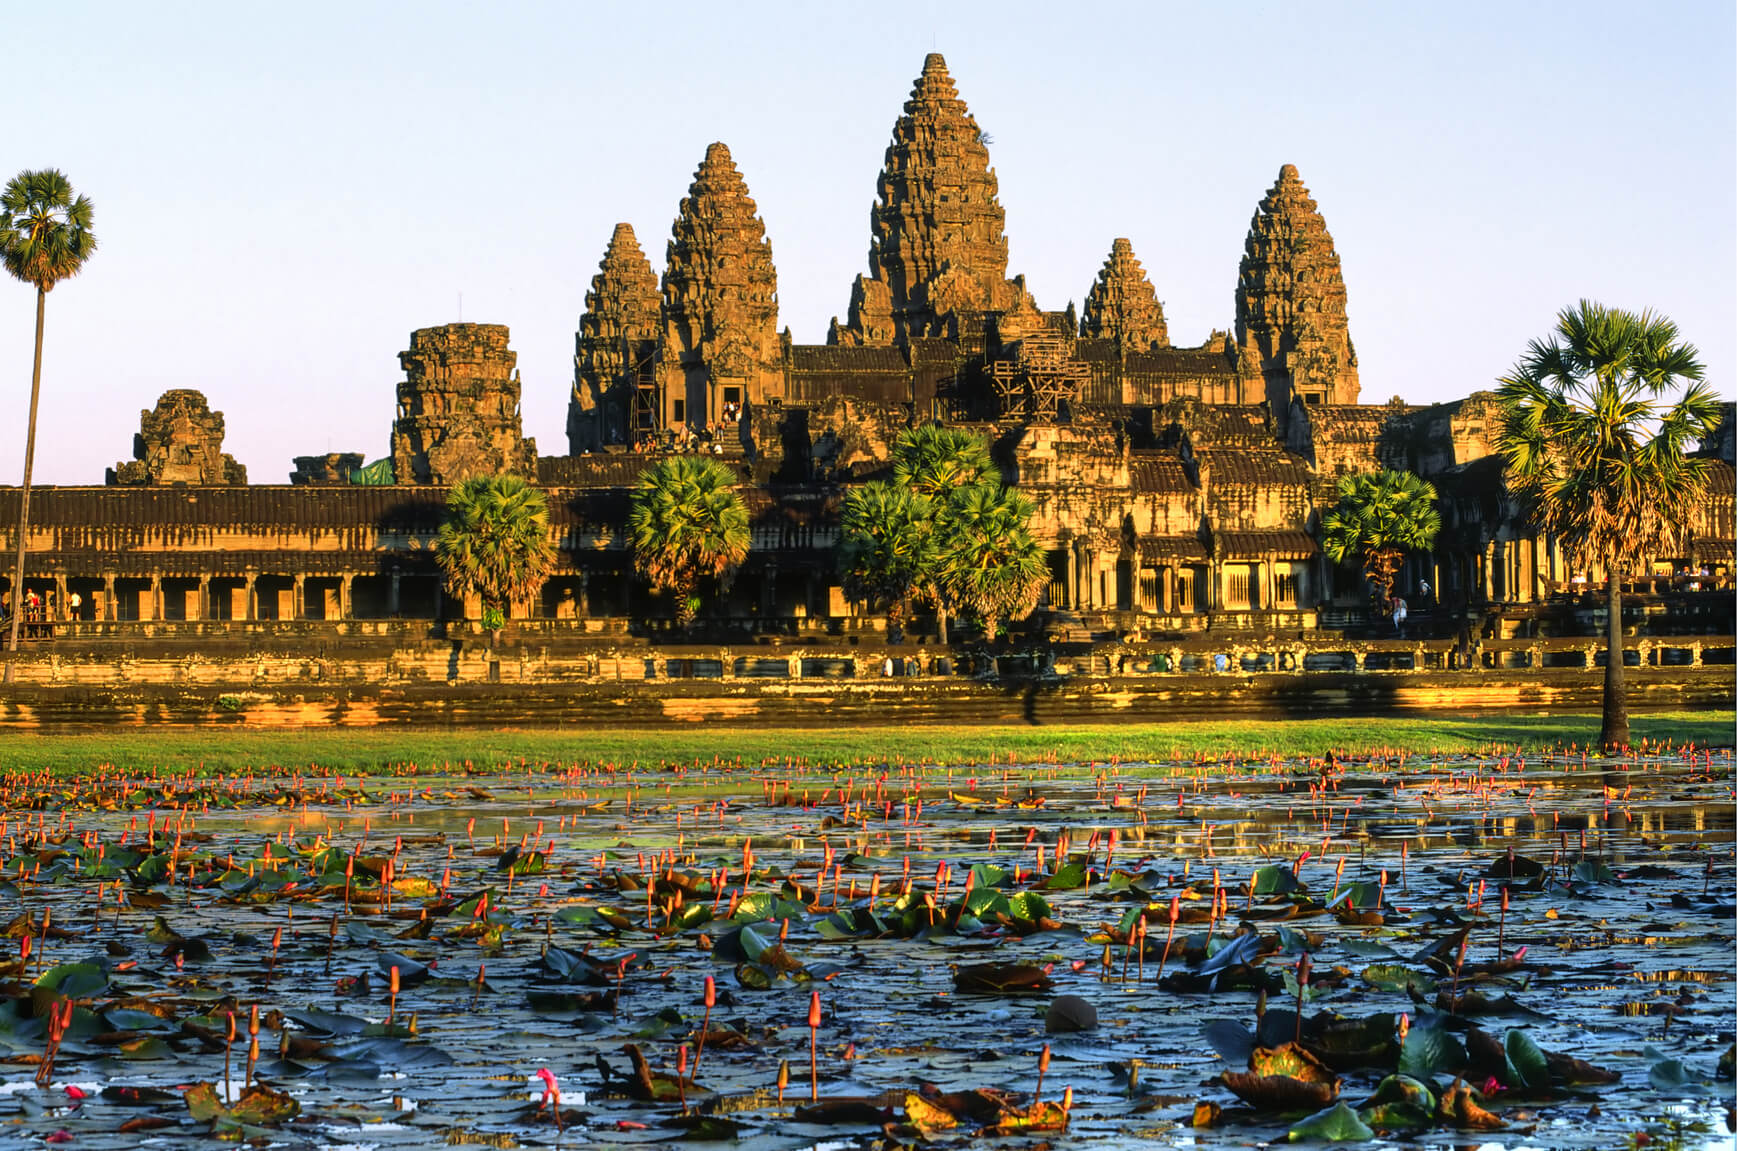 Vancouver, Canada to Phnom Penh, Cambodia for only $535 CAD roundtrip